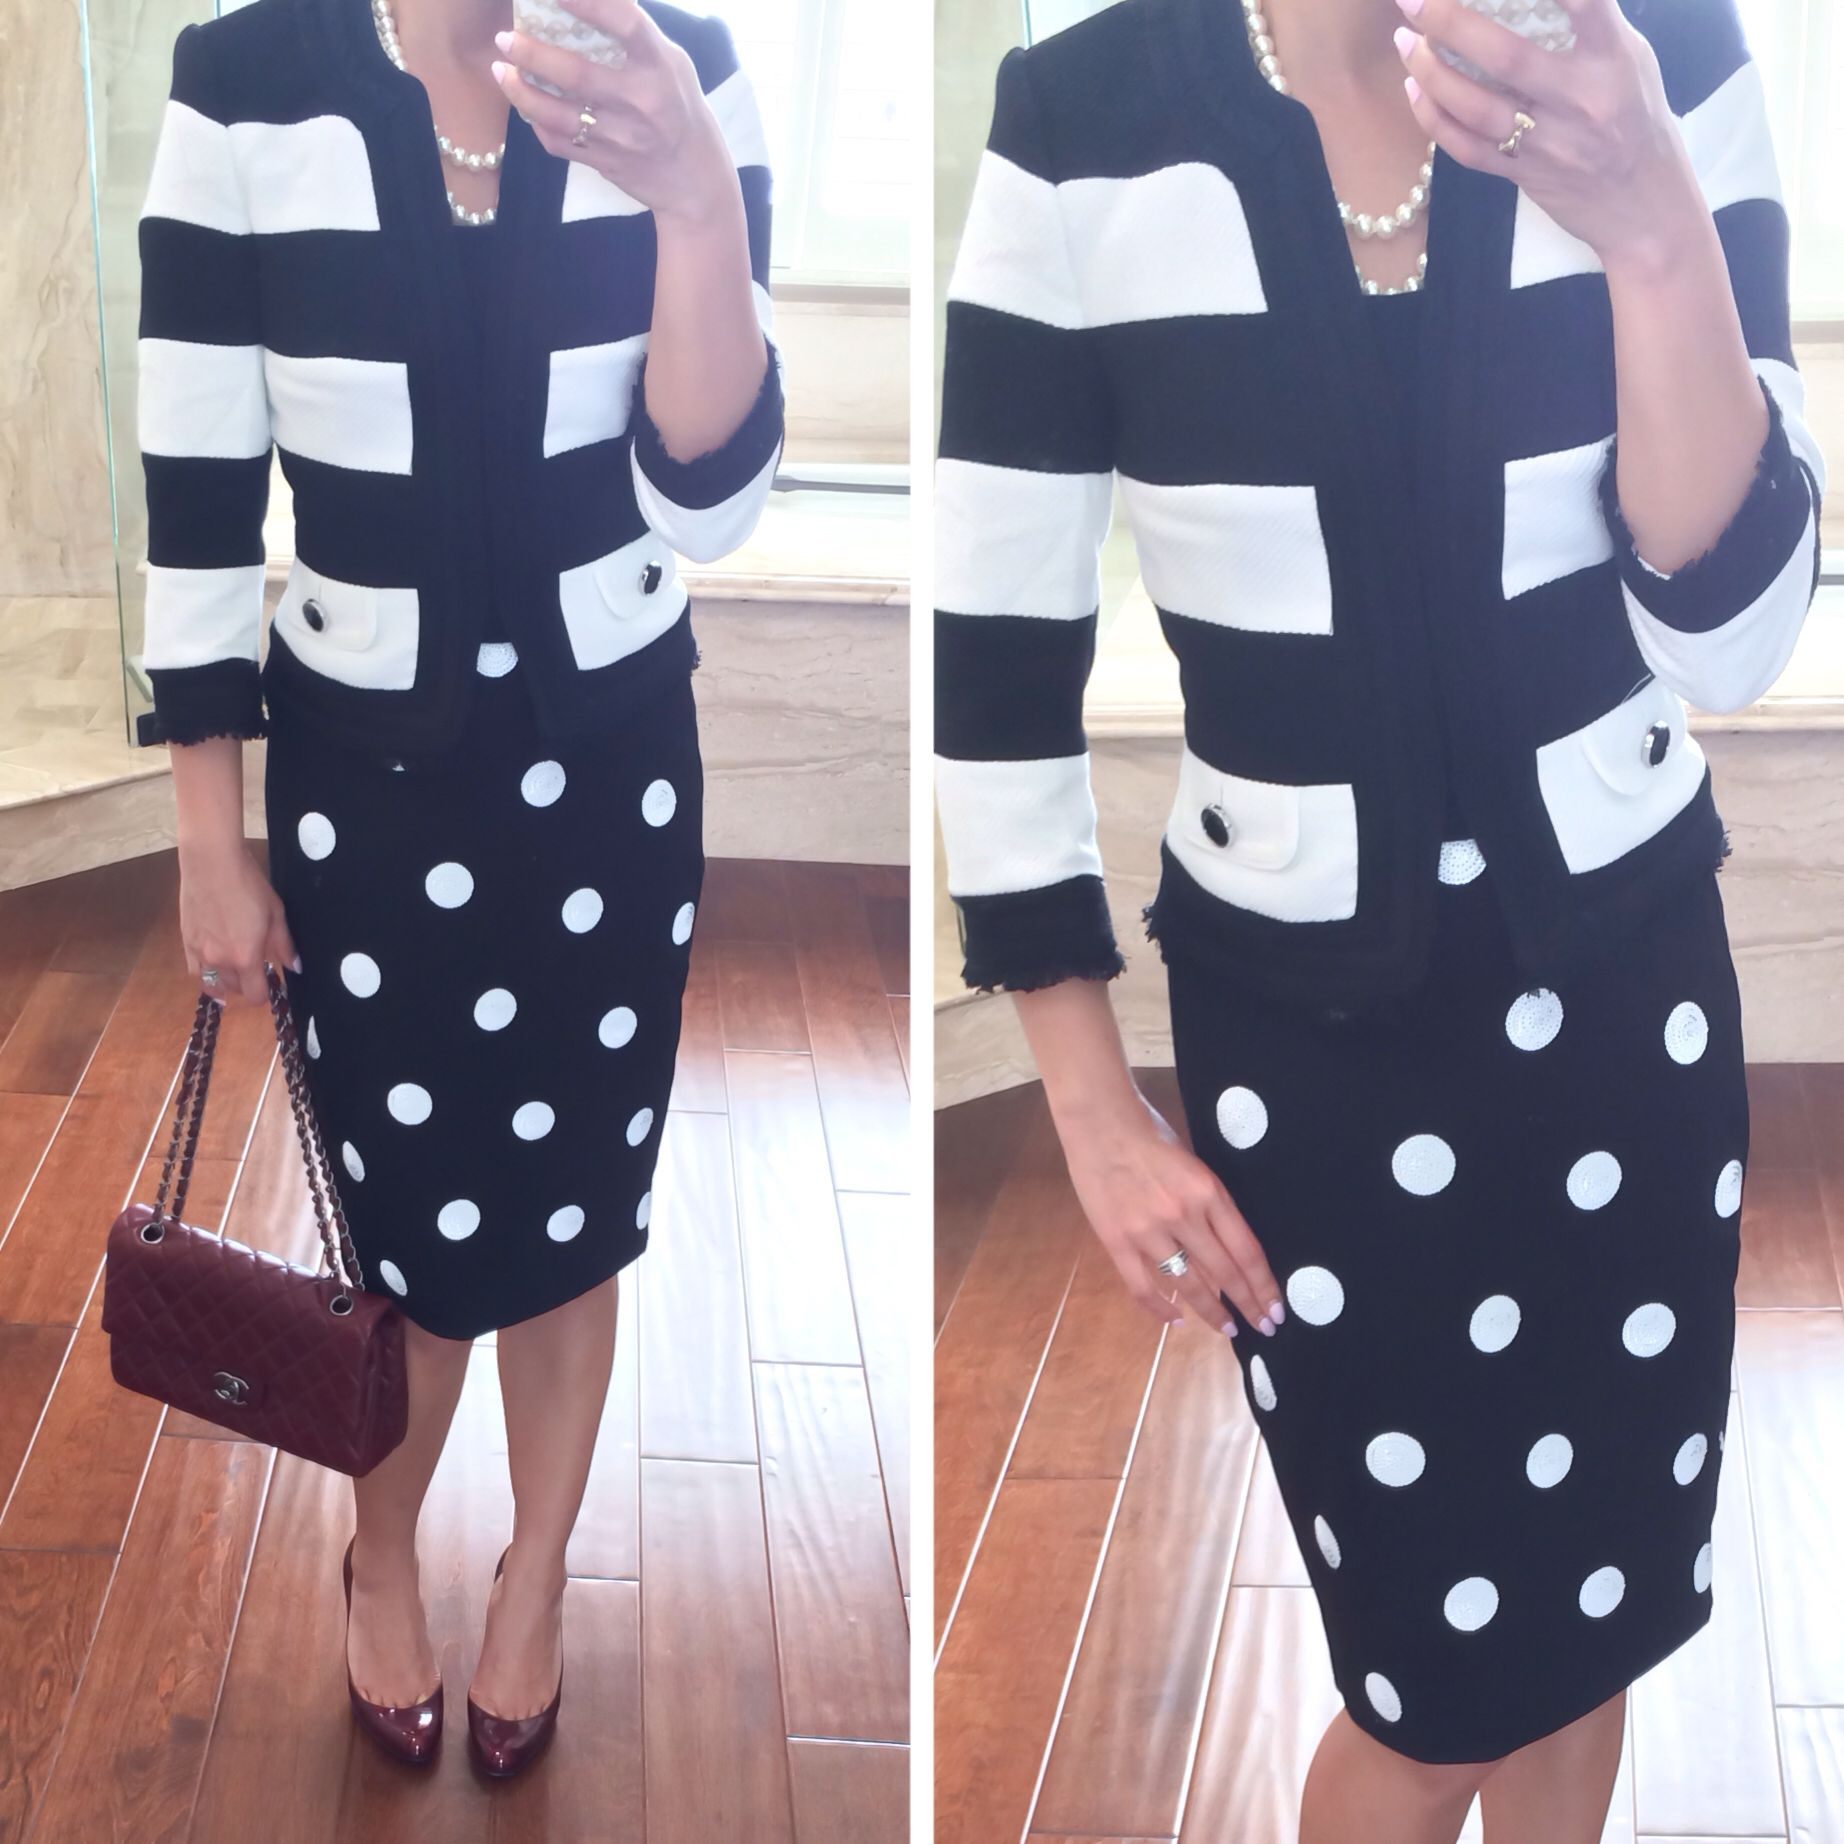 Big polka dot skirt, bold black and white striped jacket top, pearl necklace, burgundy Chanel purse and burgundy pumps - dressy outfit // StylishPetite.com